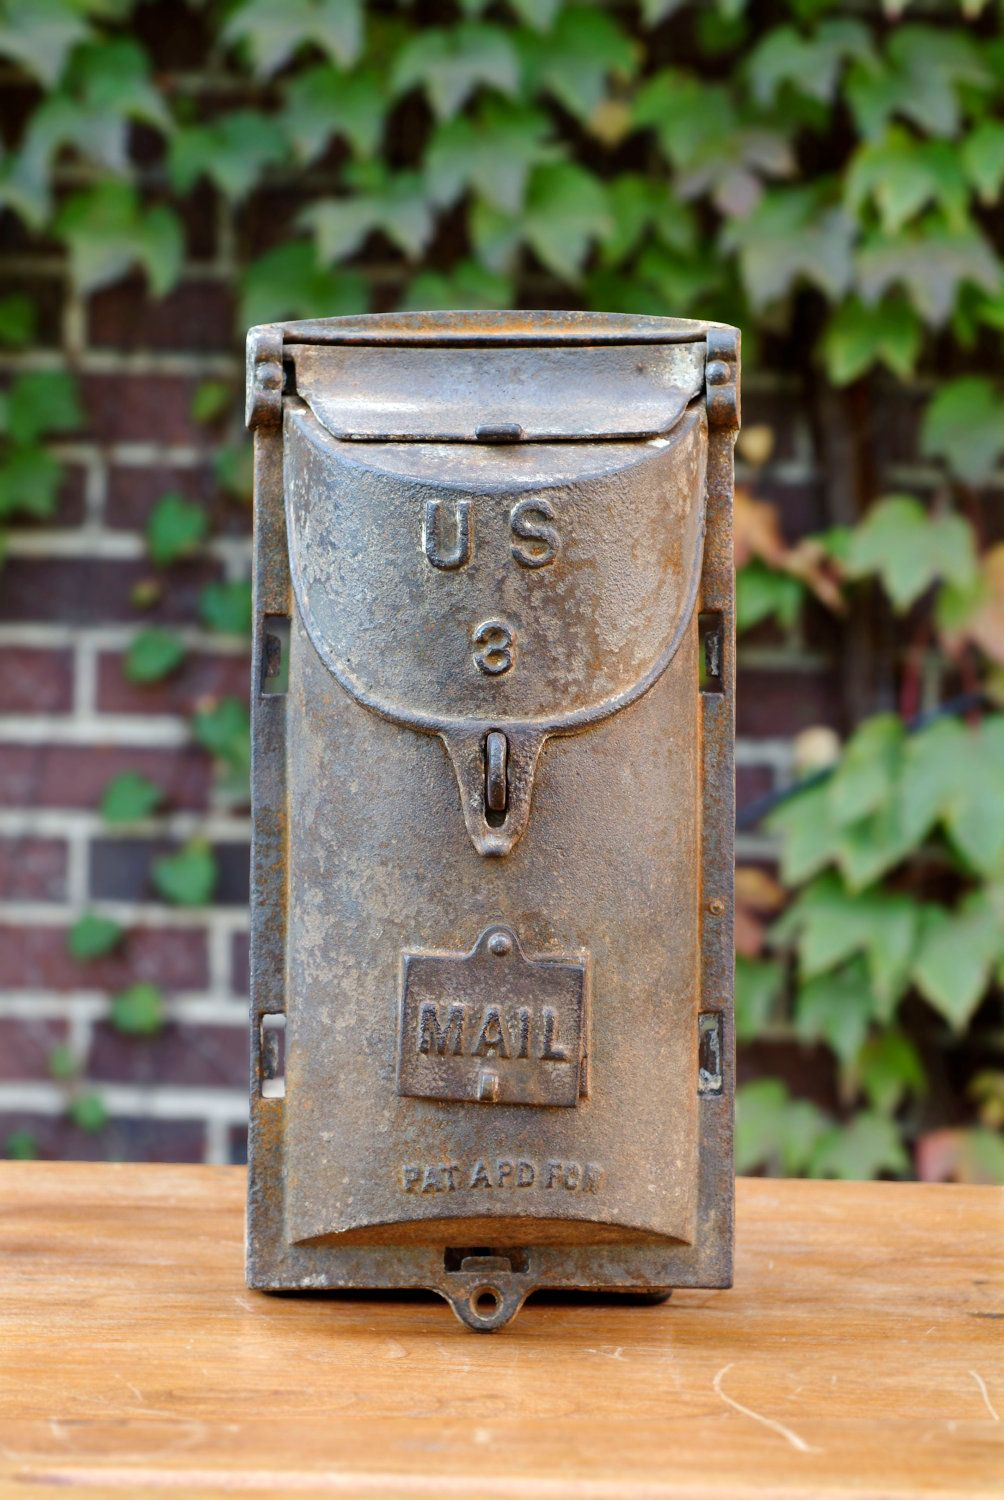 Antique Wall Mailbox Us 3 Cast Iron Hanging Mailbox Etsy Vintage Mailbox Antique Mailbox Old Mailbox